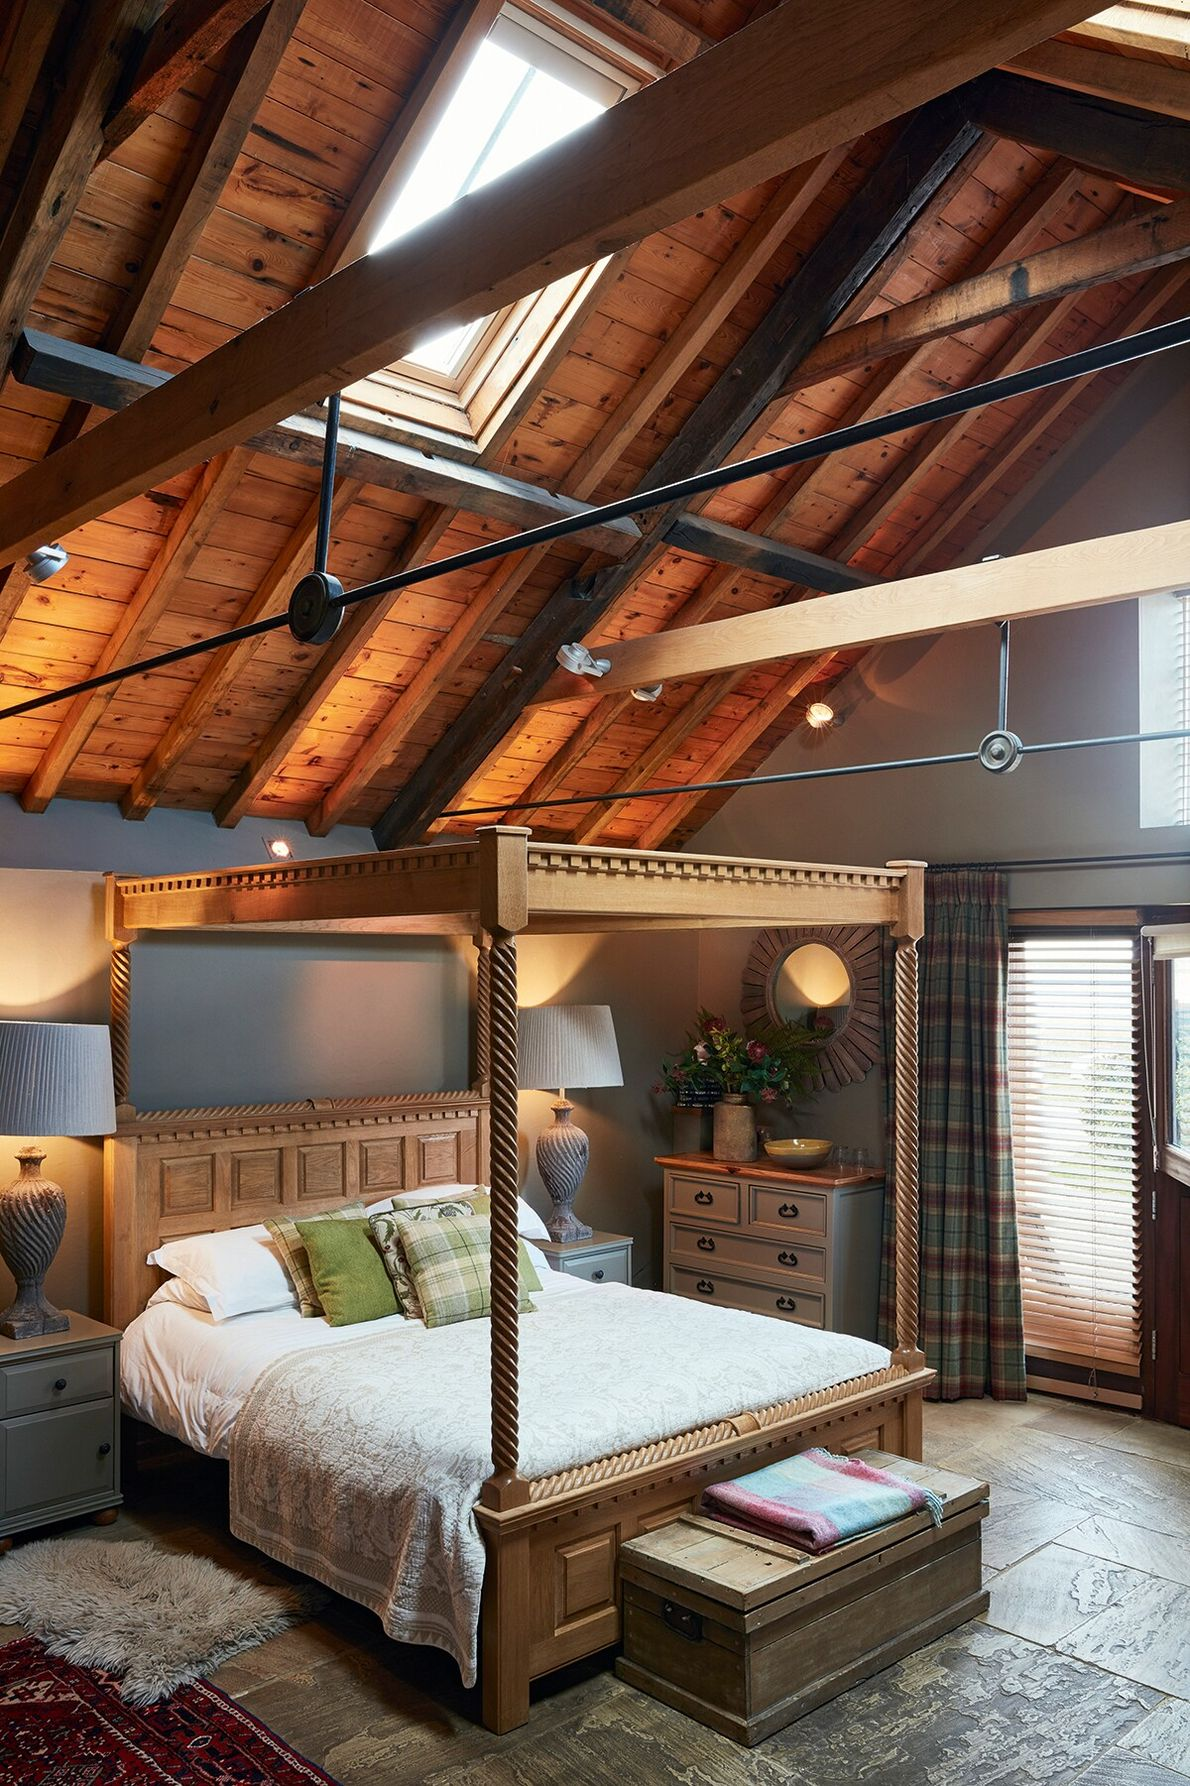 Unique self-catering and B&B accommodation awaits at Cley Windmill, which dates to the early 19th century. ...